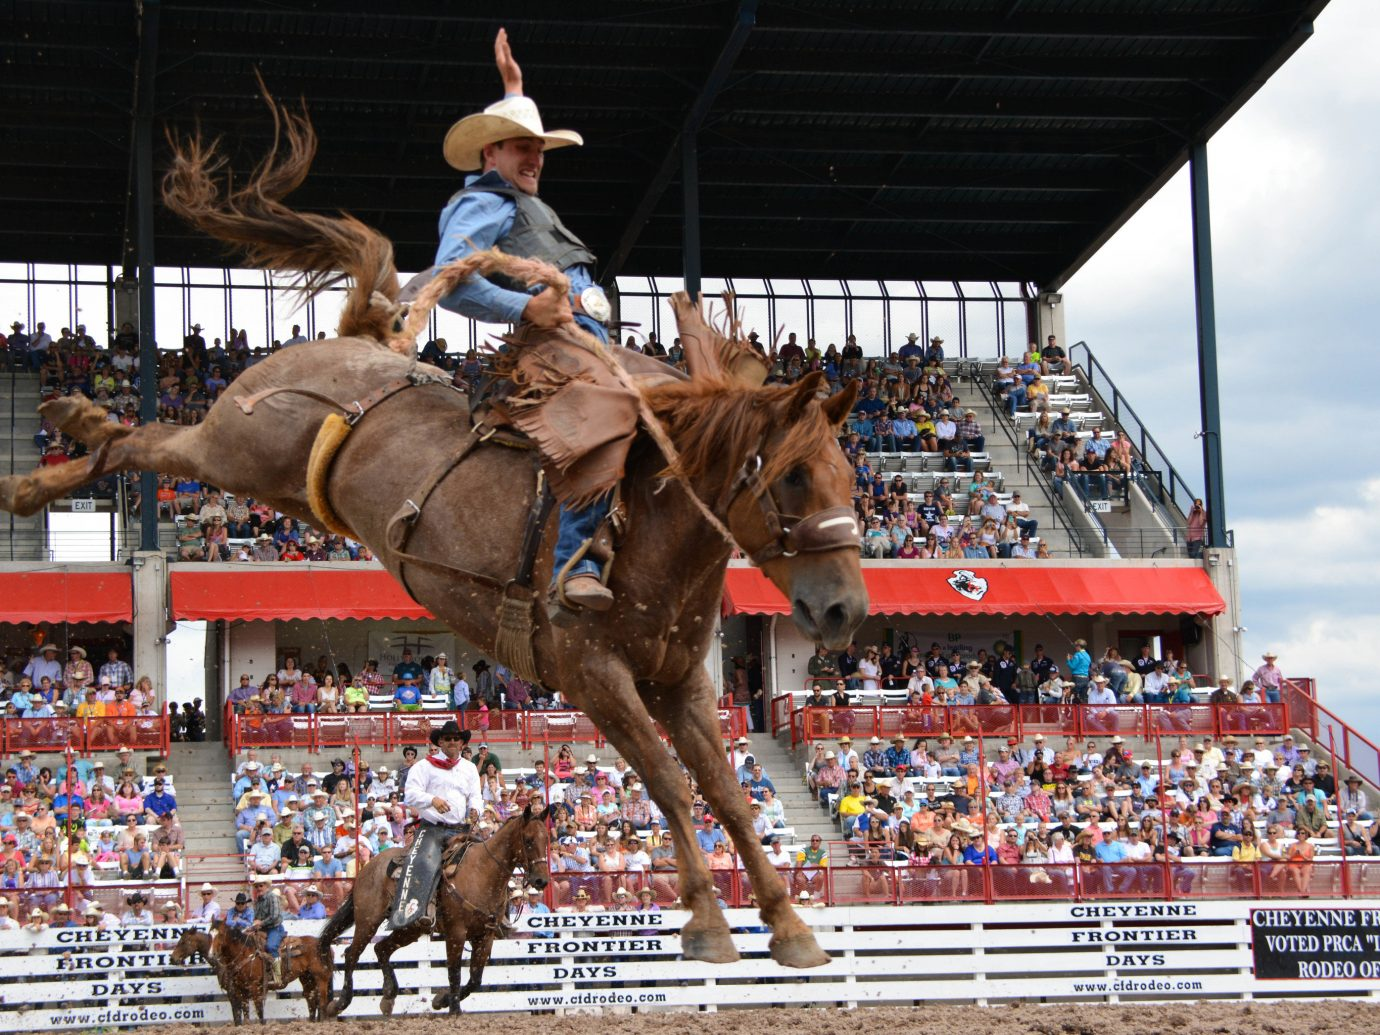 Trip Ideas Dog outdoor rodeo western riding sports traditional sport jumping equestrian sport animal sports barrel racing mammal event fair equestrianism pulling horse